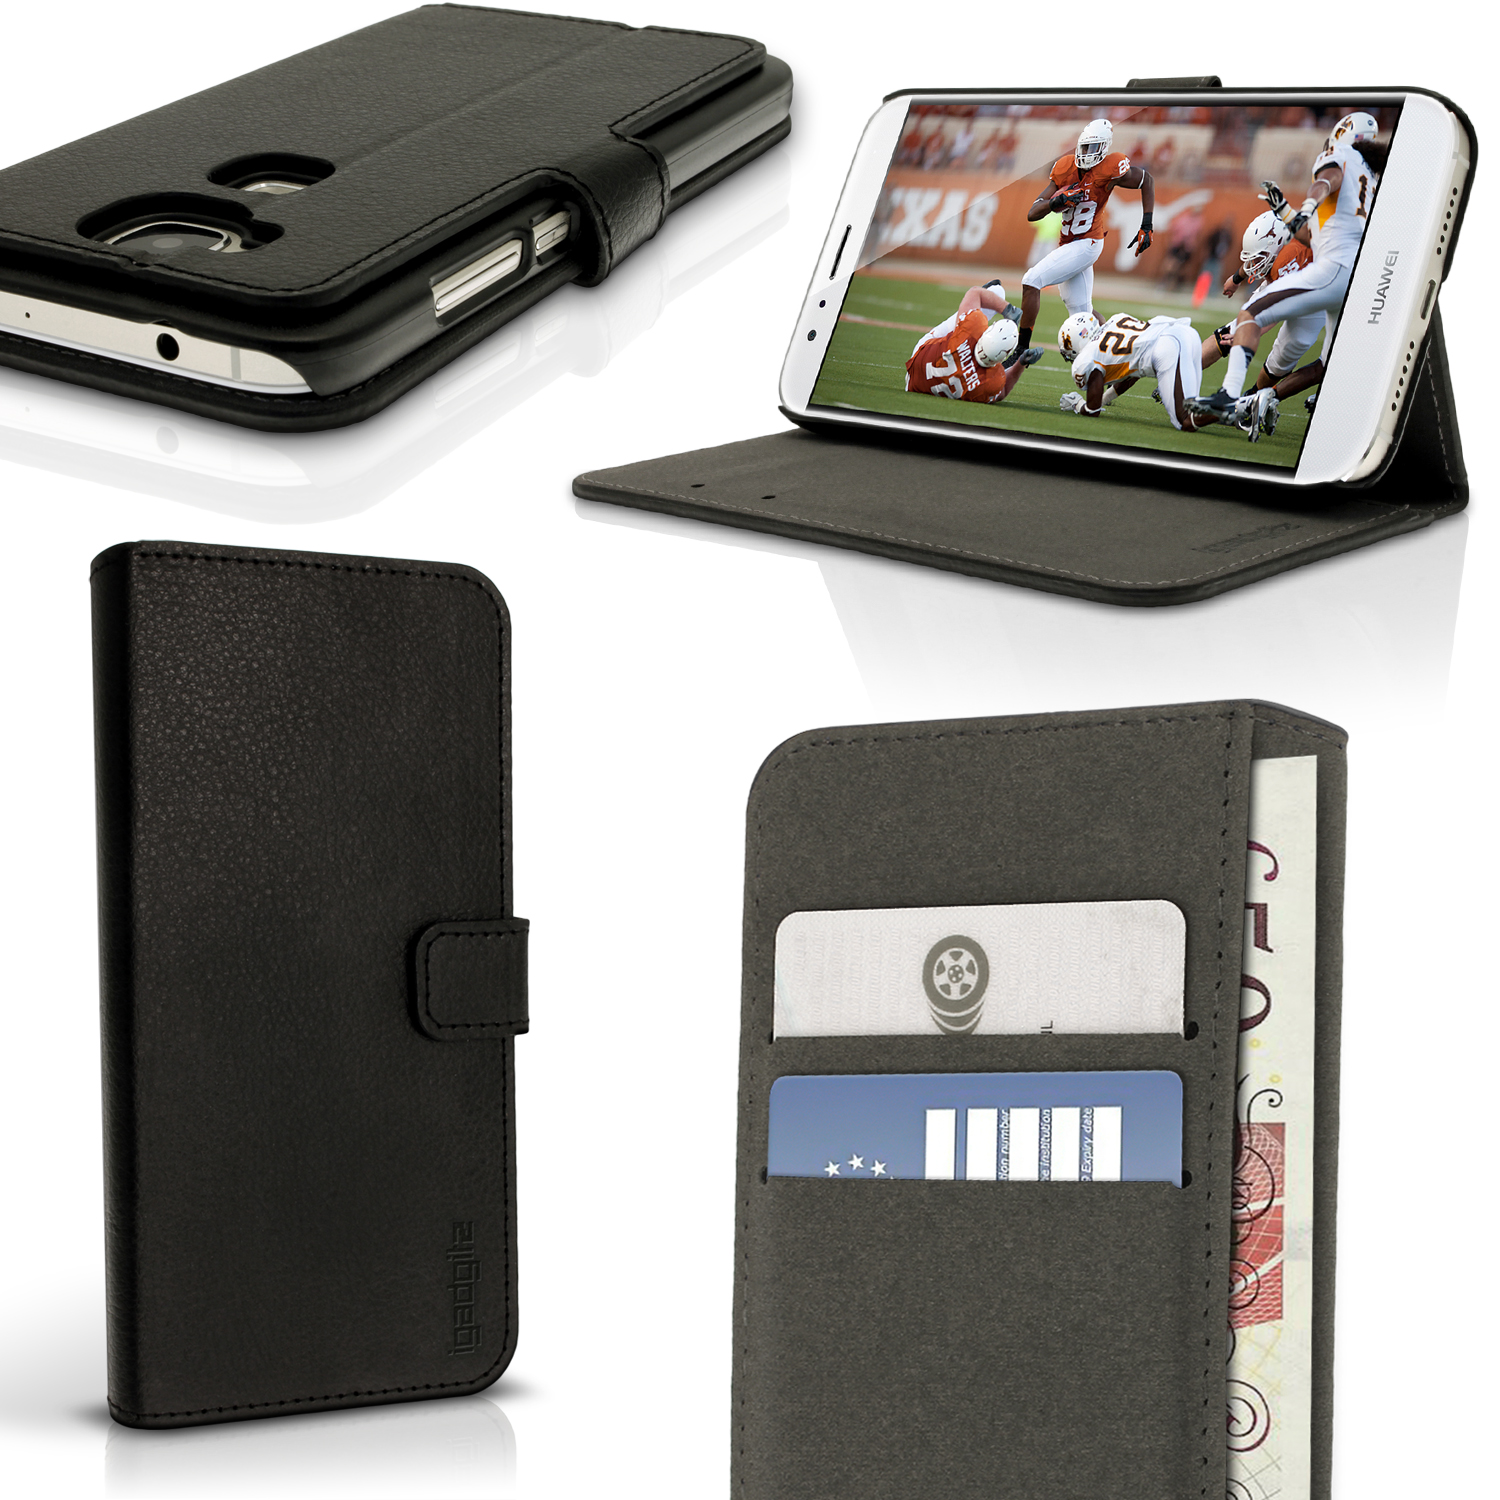 iGadgitz Premium Wallet Flip PU Leather Case Cover for Huawei G8 With Stand + Card Slots + Screen Protector